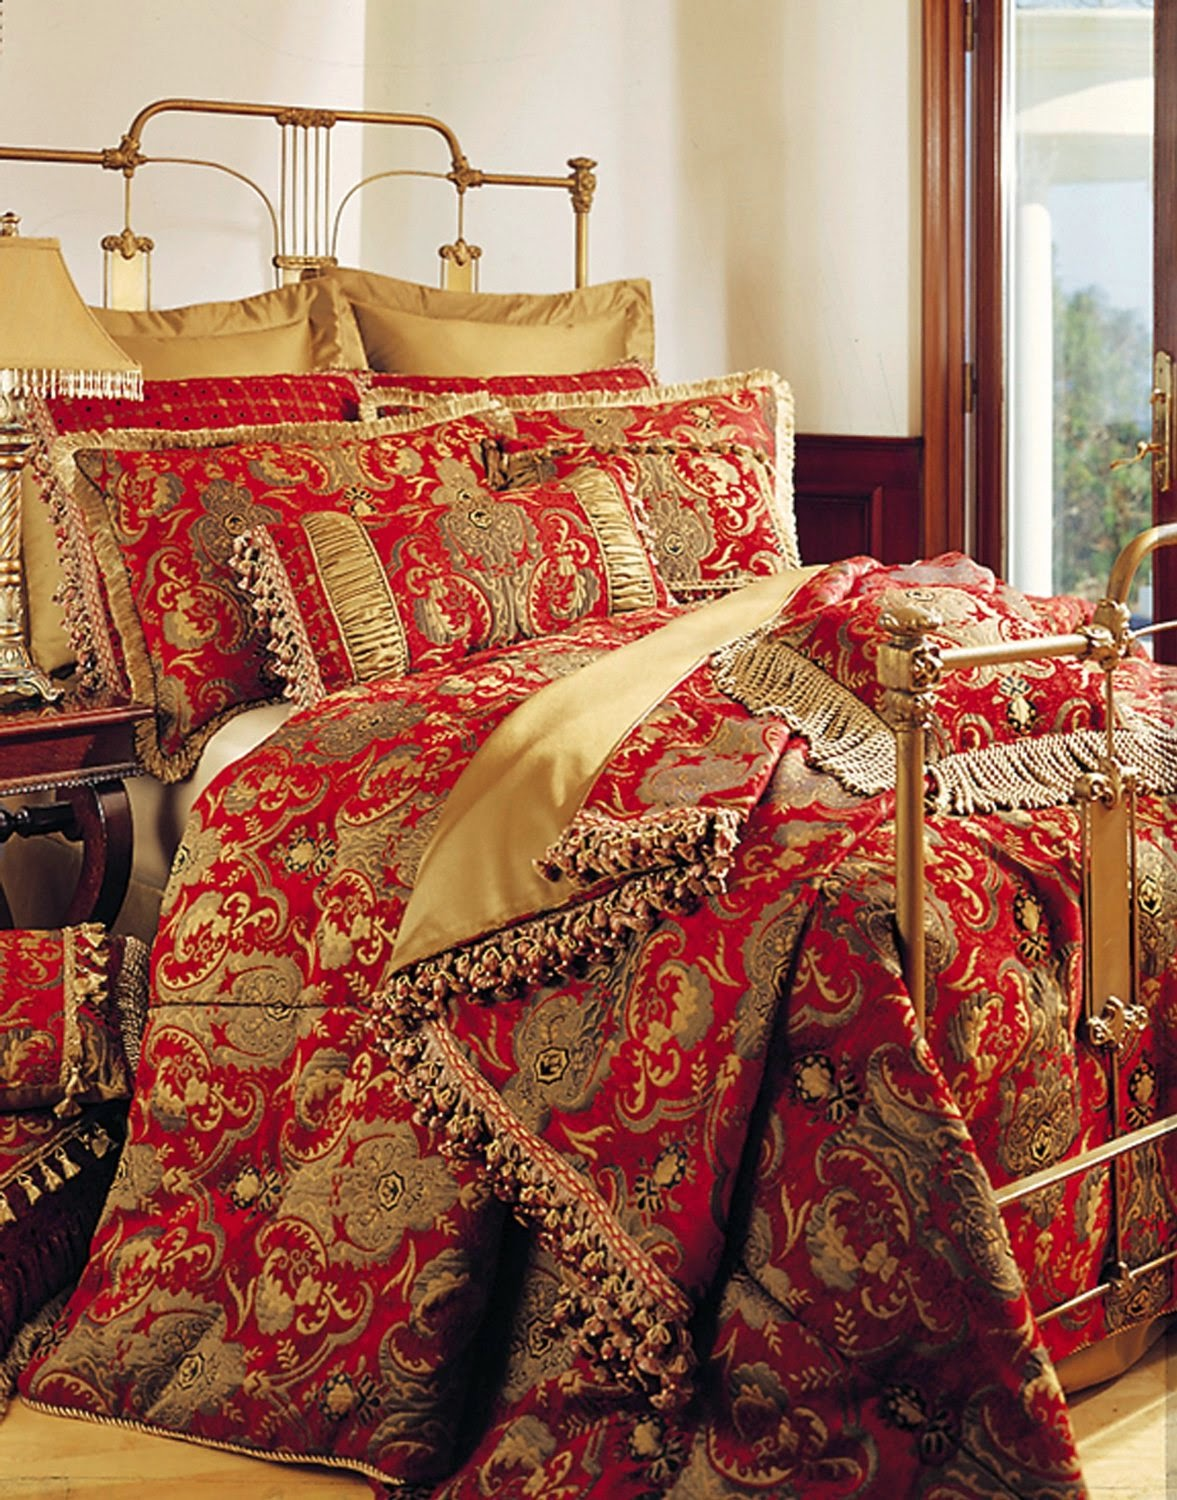 Bedroom Decor Ideas And Designs Oriental Bedroom